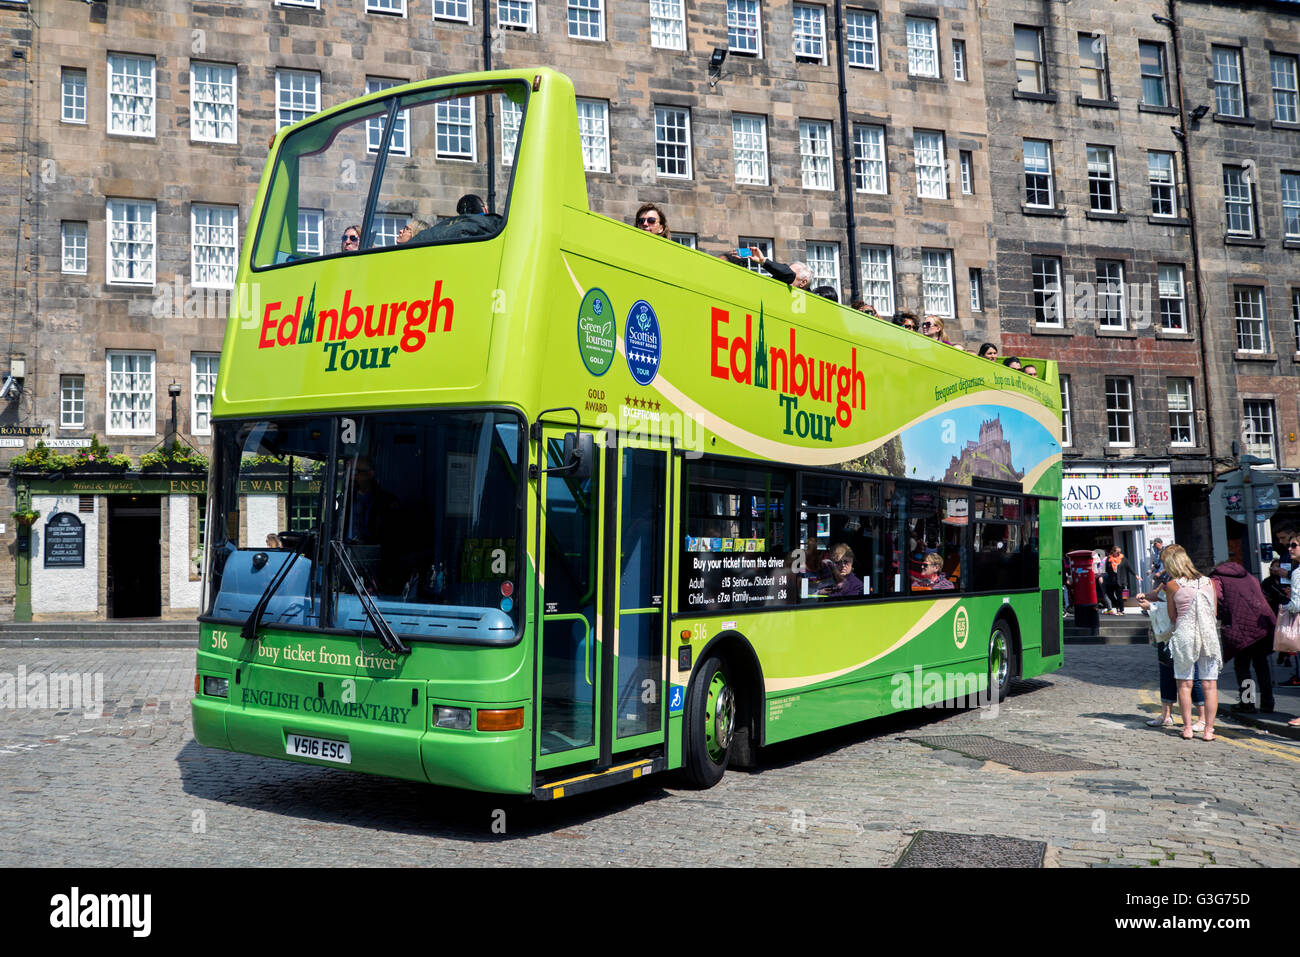 An Edinburgh Tour open topped bus in the Lawnmarket at the top of the Royal Mile in Edinburgh. - Stock Image